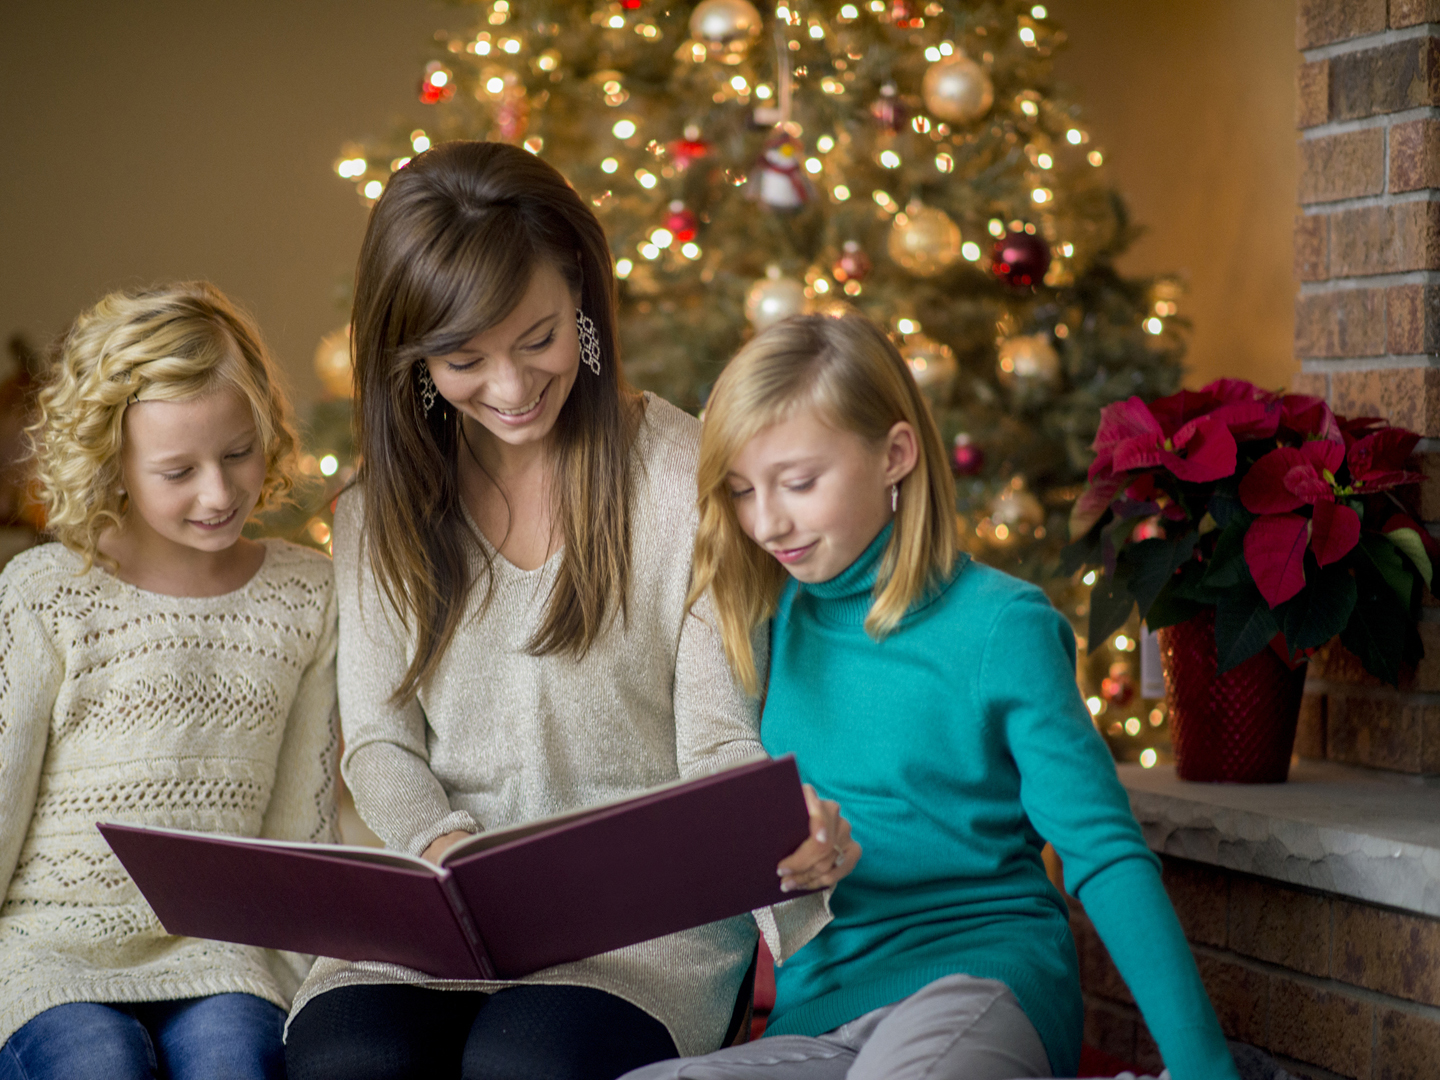 Healthy Holiday Traditions? | Balanced Living | Andrew Weil, M.D.